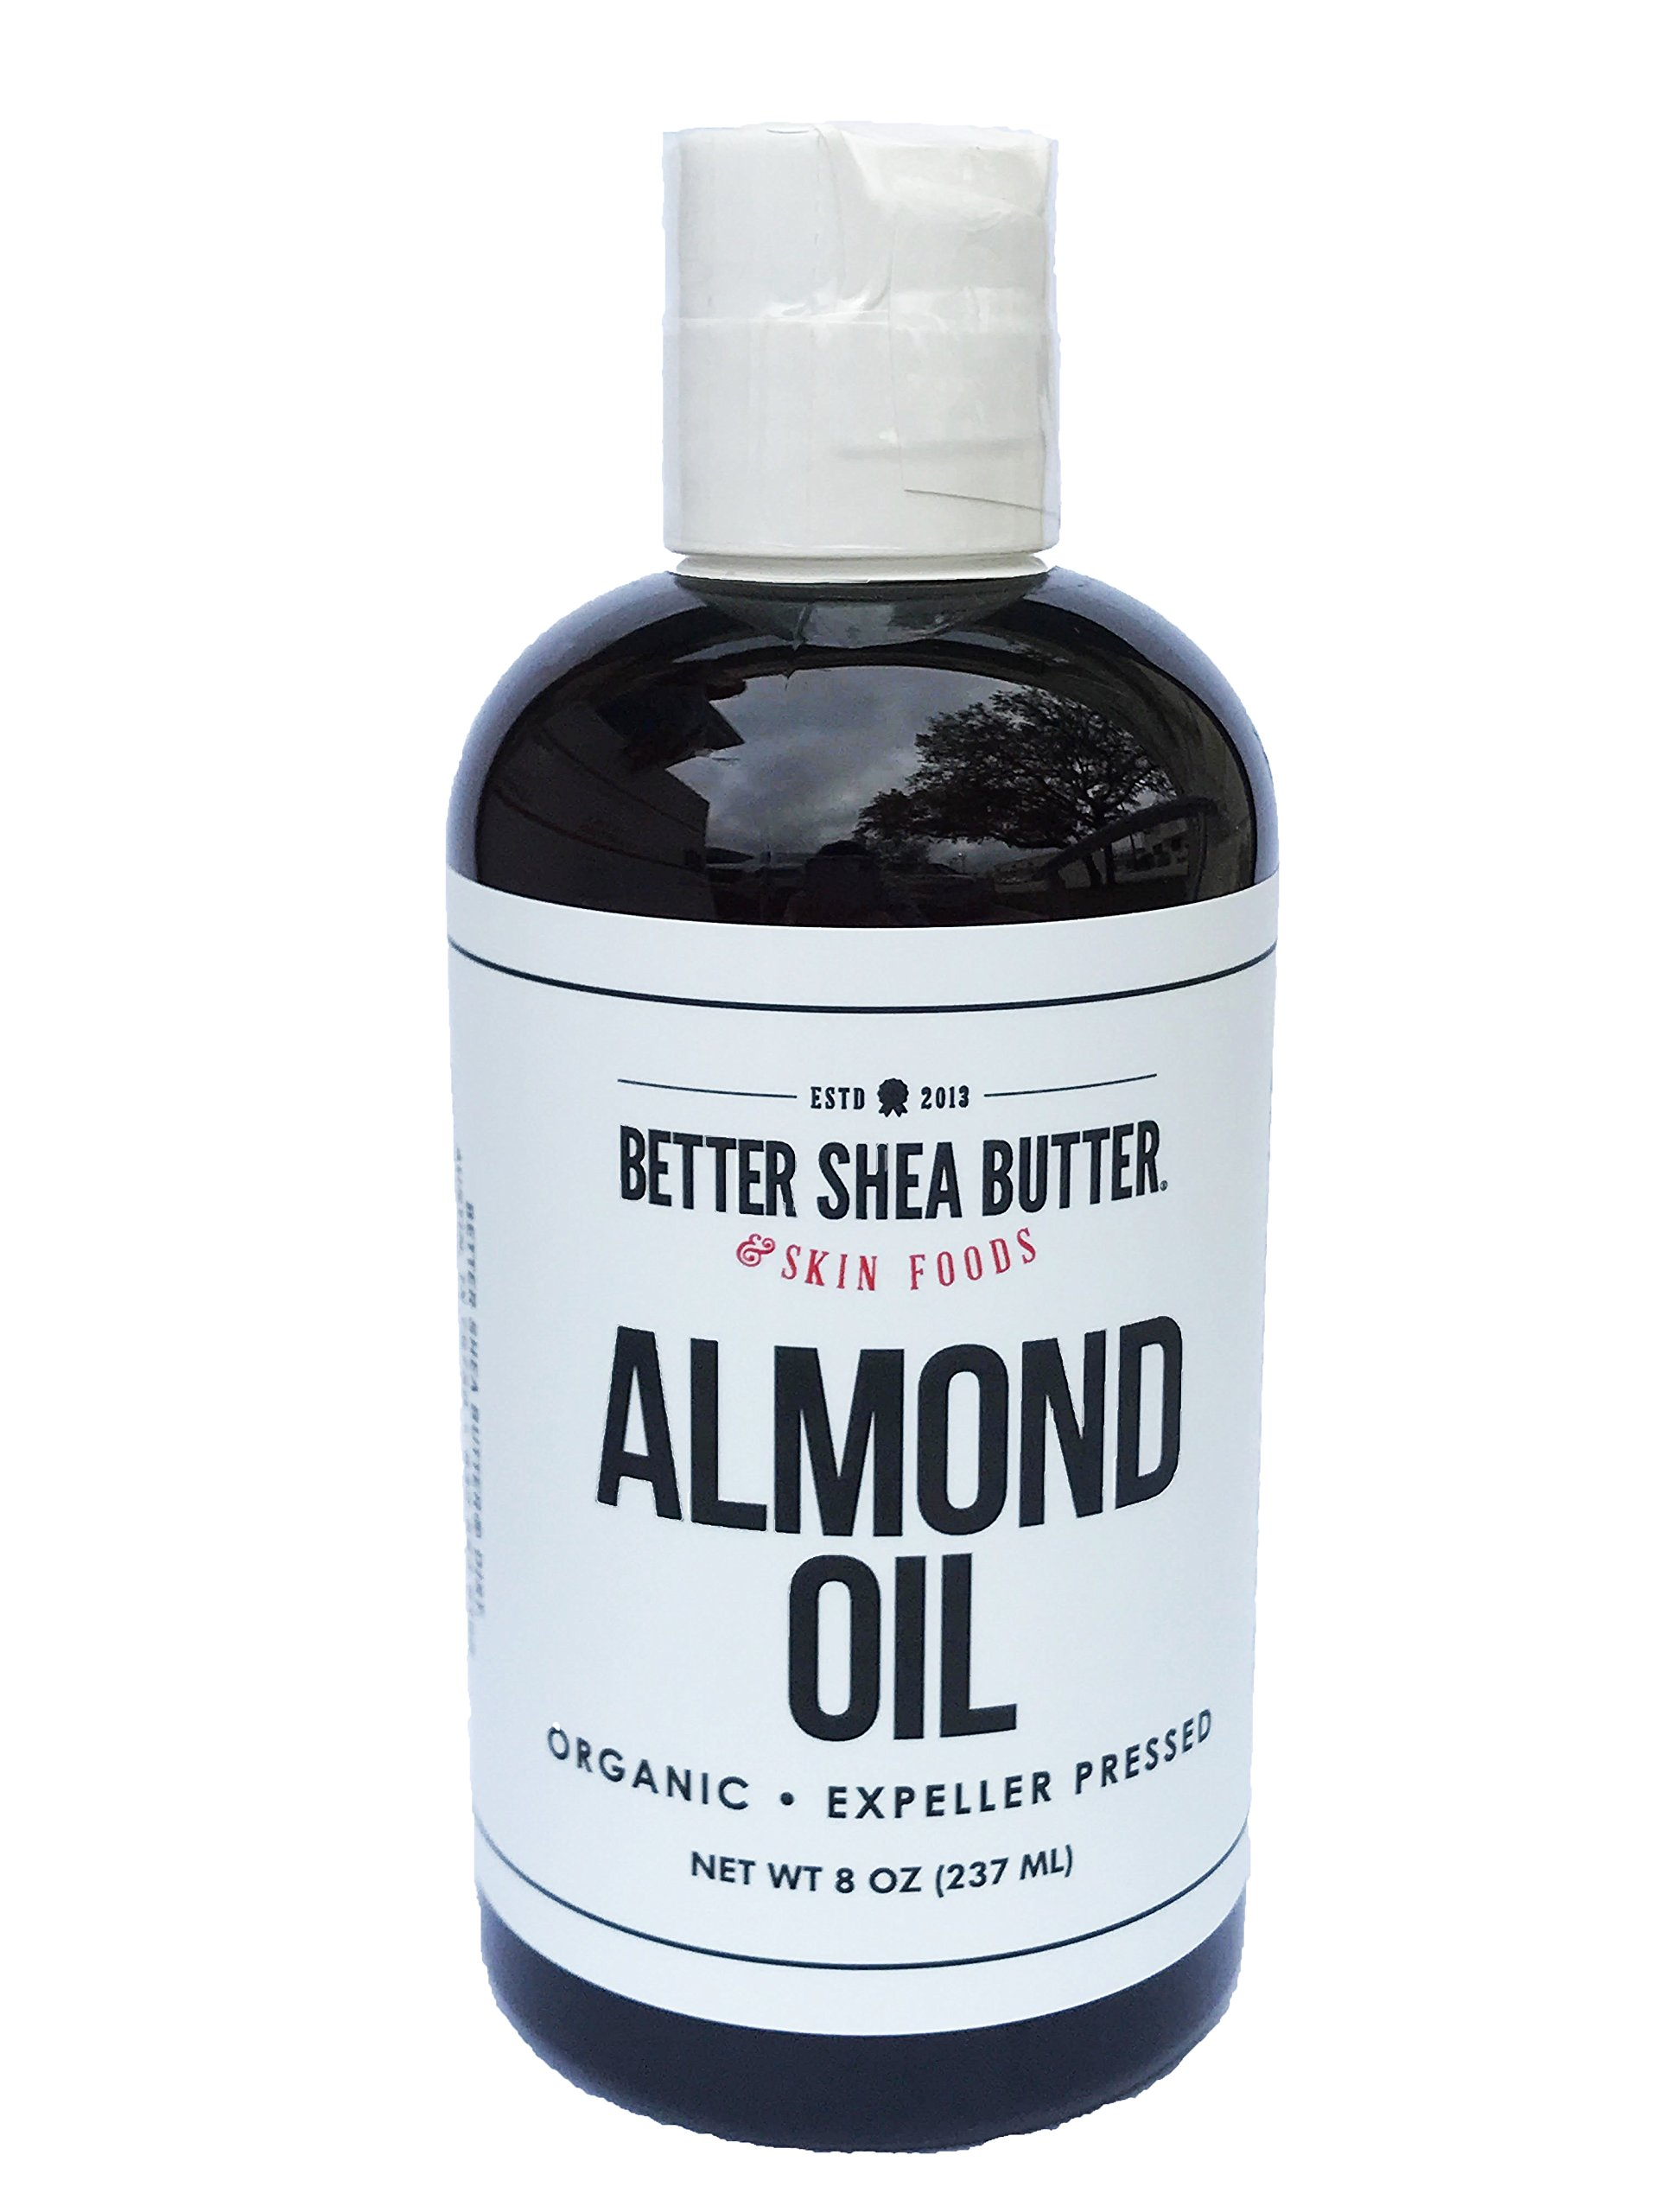 ORGANIC SWEET ALMOND OIL - 100% Pure and Unrefined - Use Alone on Hair, Face and Body - Massage Oil - Carrier oil for DIY skin care Recipes - 8 oz